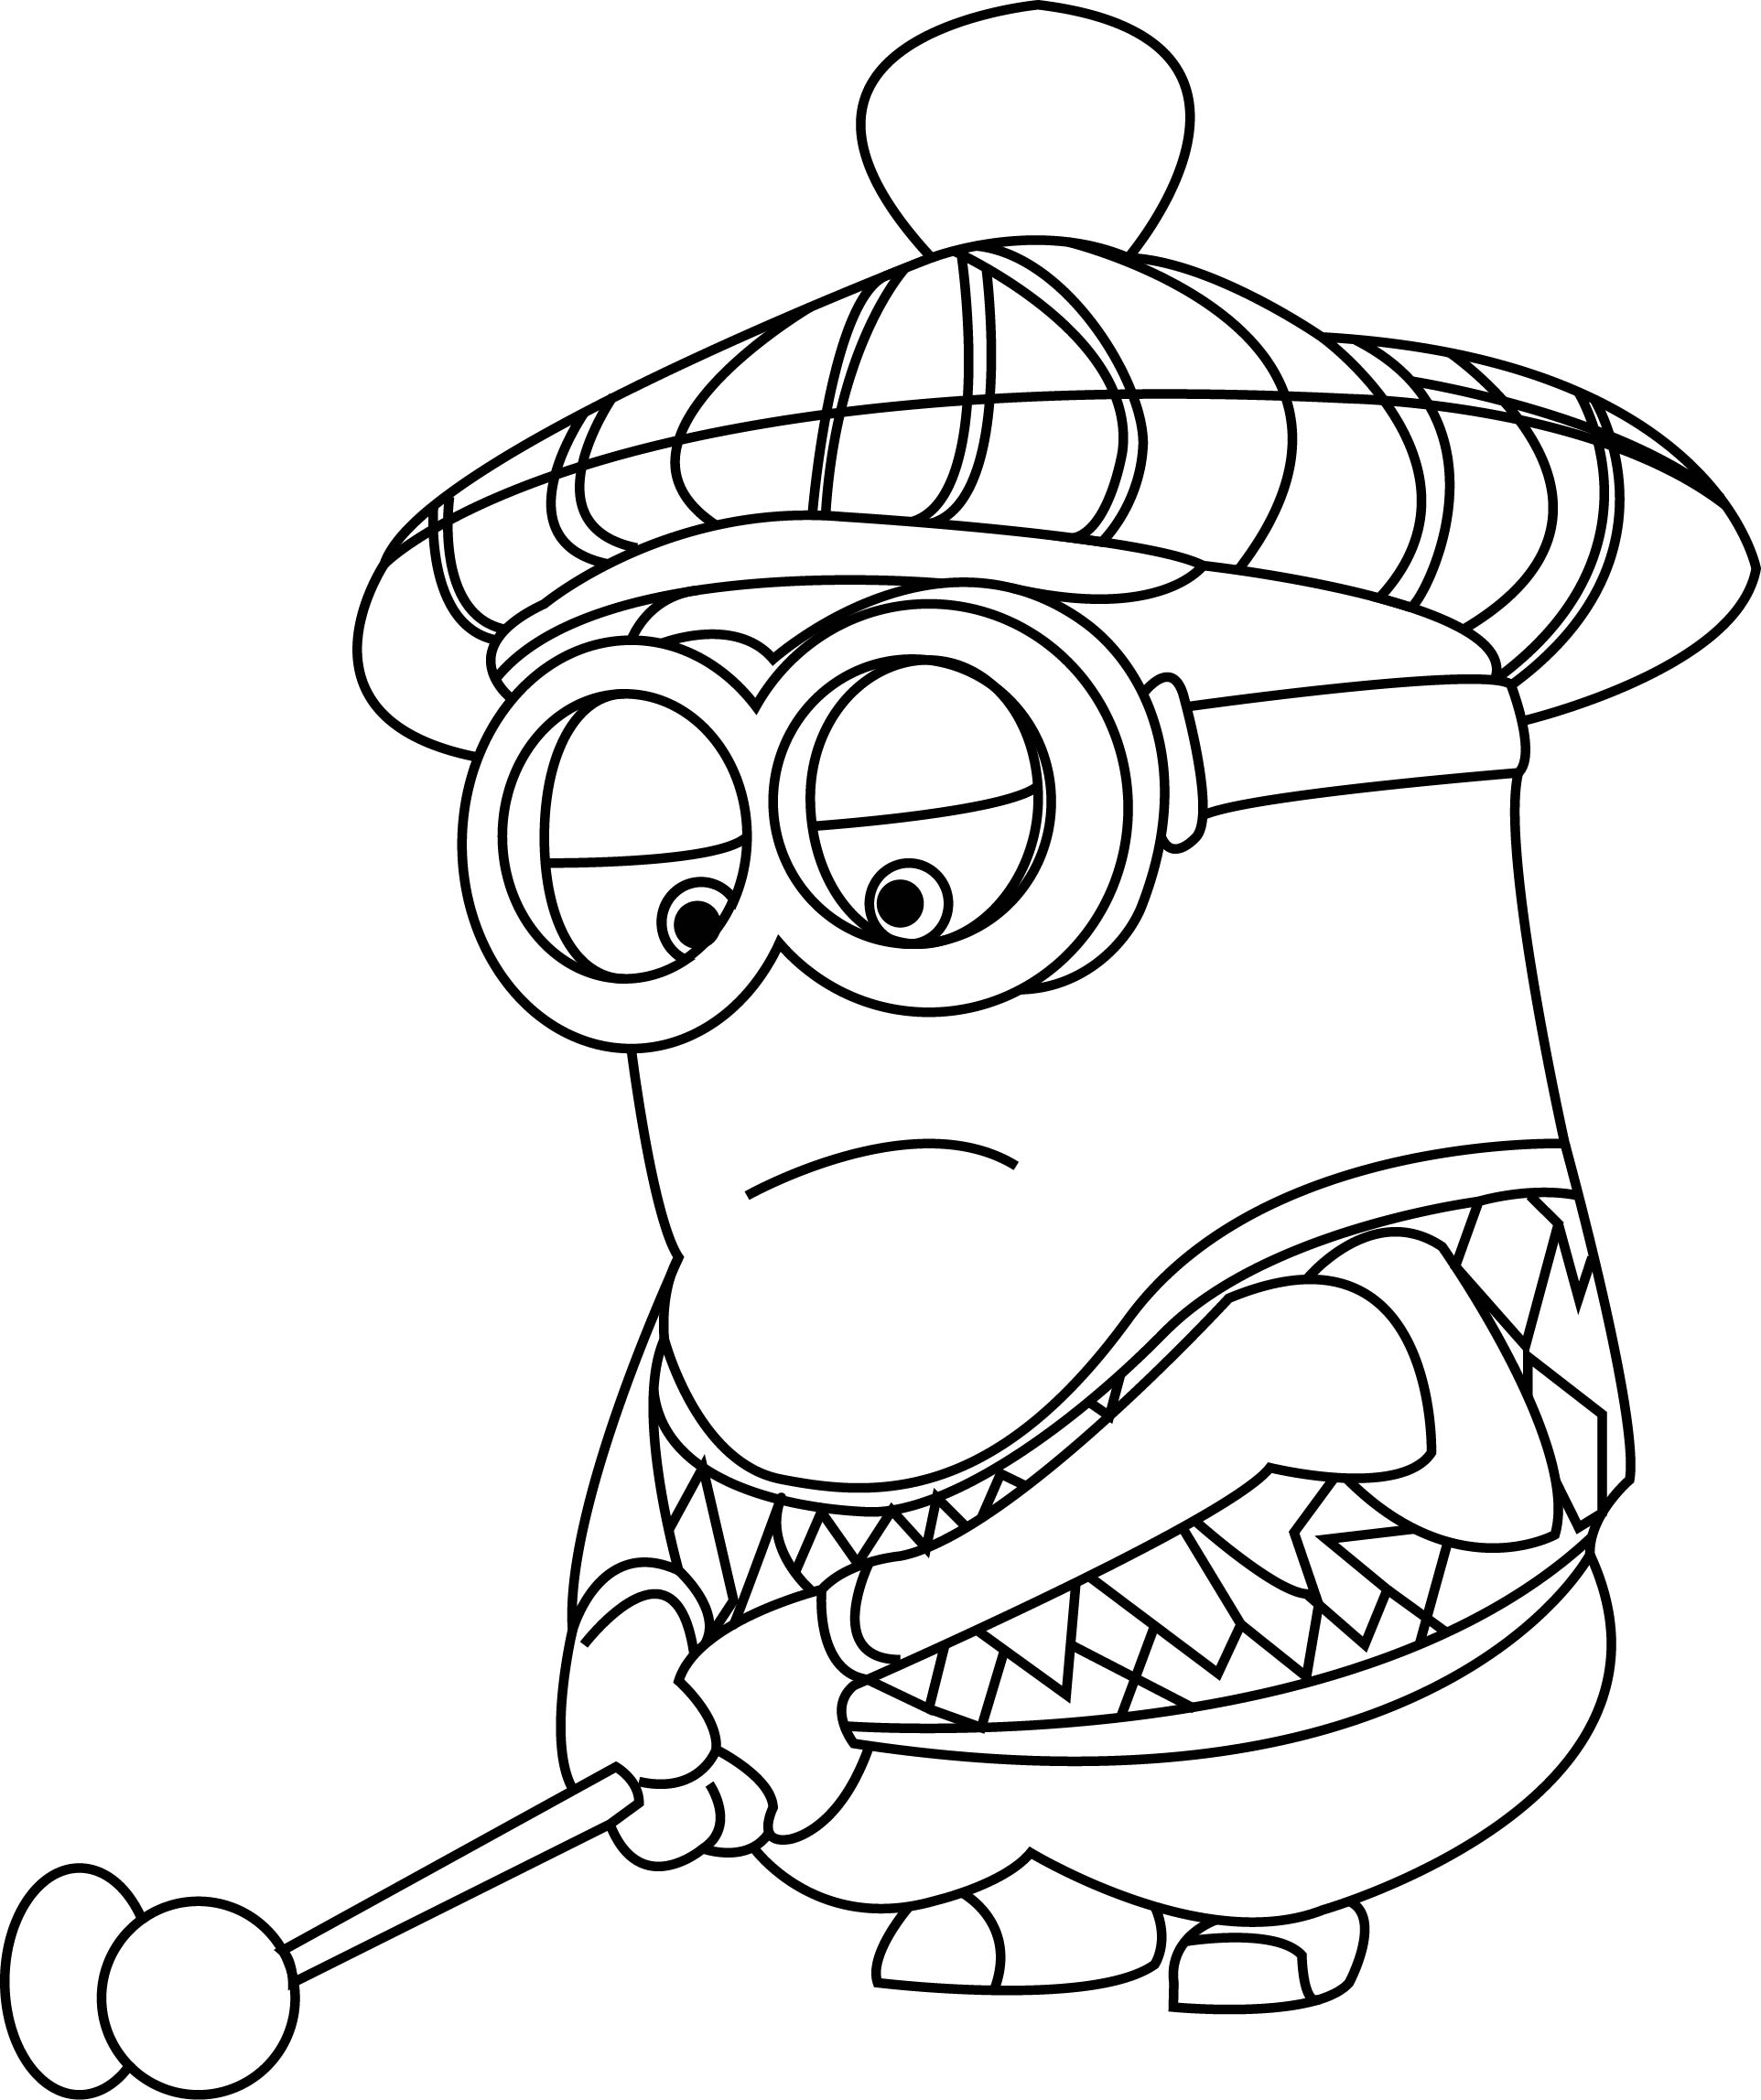 sgolf coloring pages - photo#1